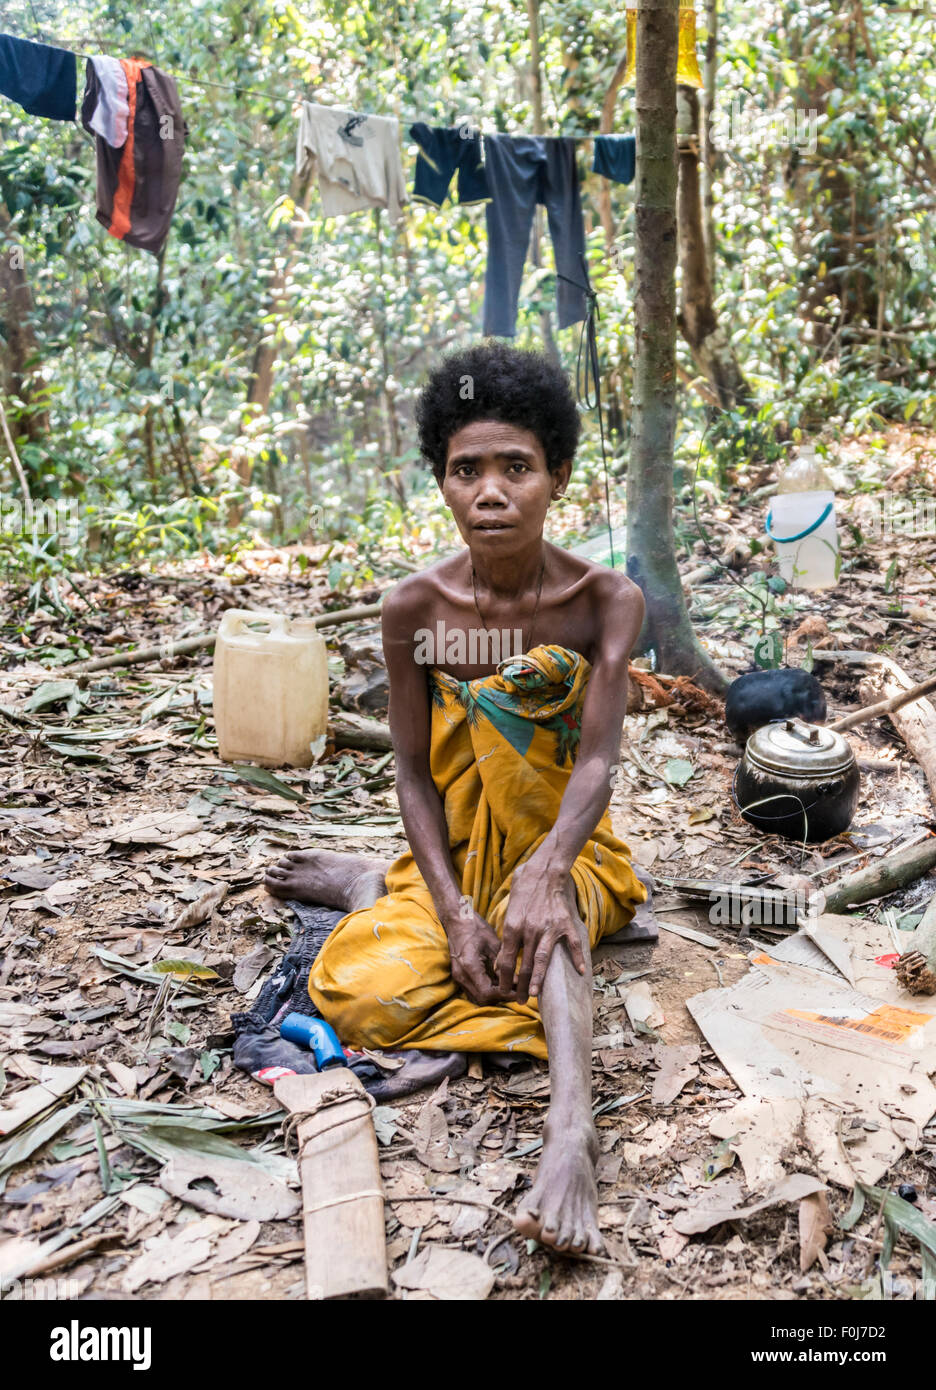 Woman of the Orang Asil tribe sitting in the jungle, natives, indigenous people, tropical rain forest - Stock Image